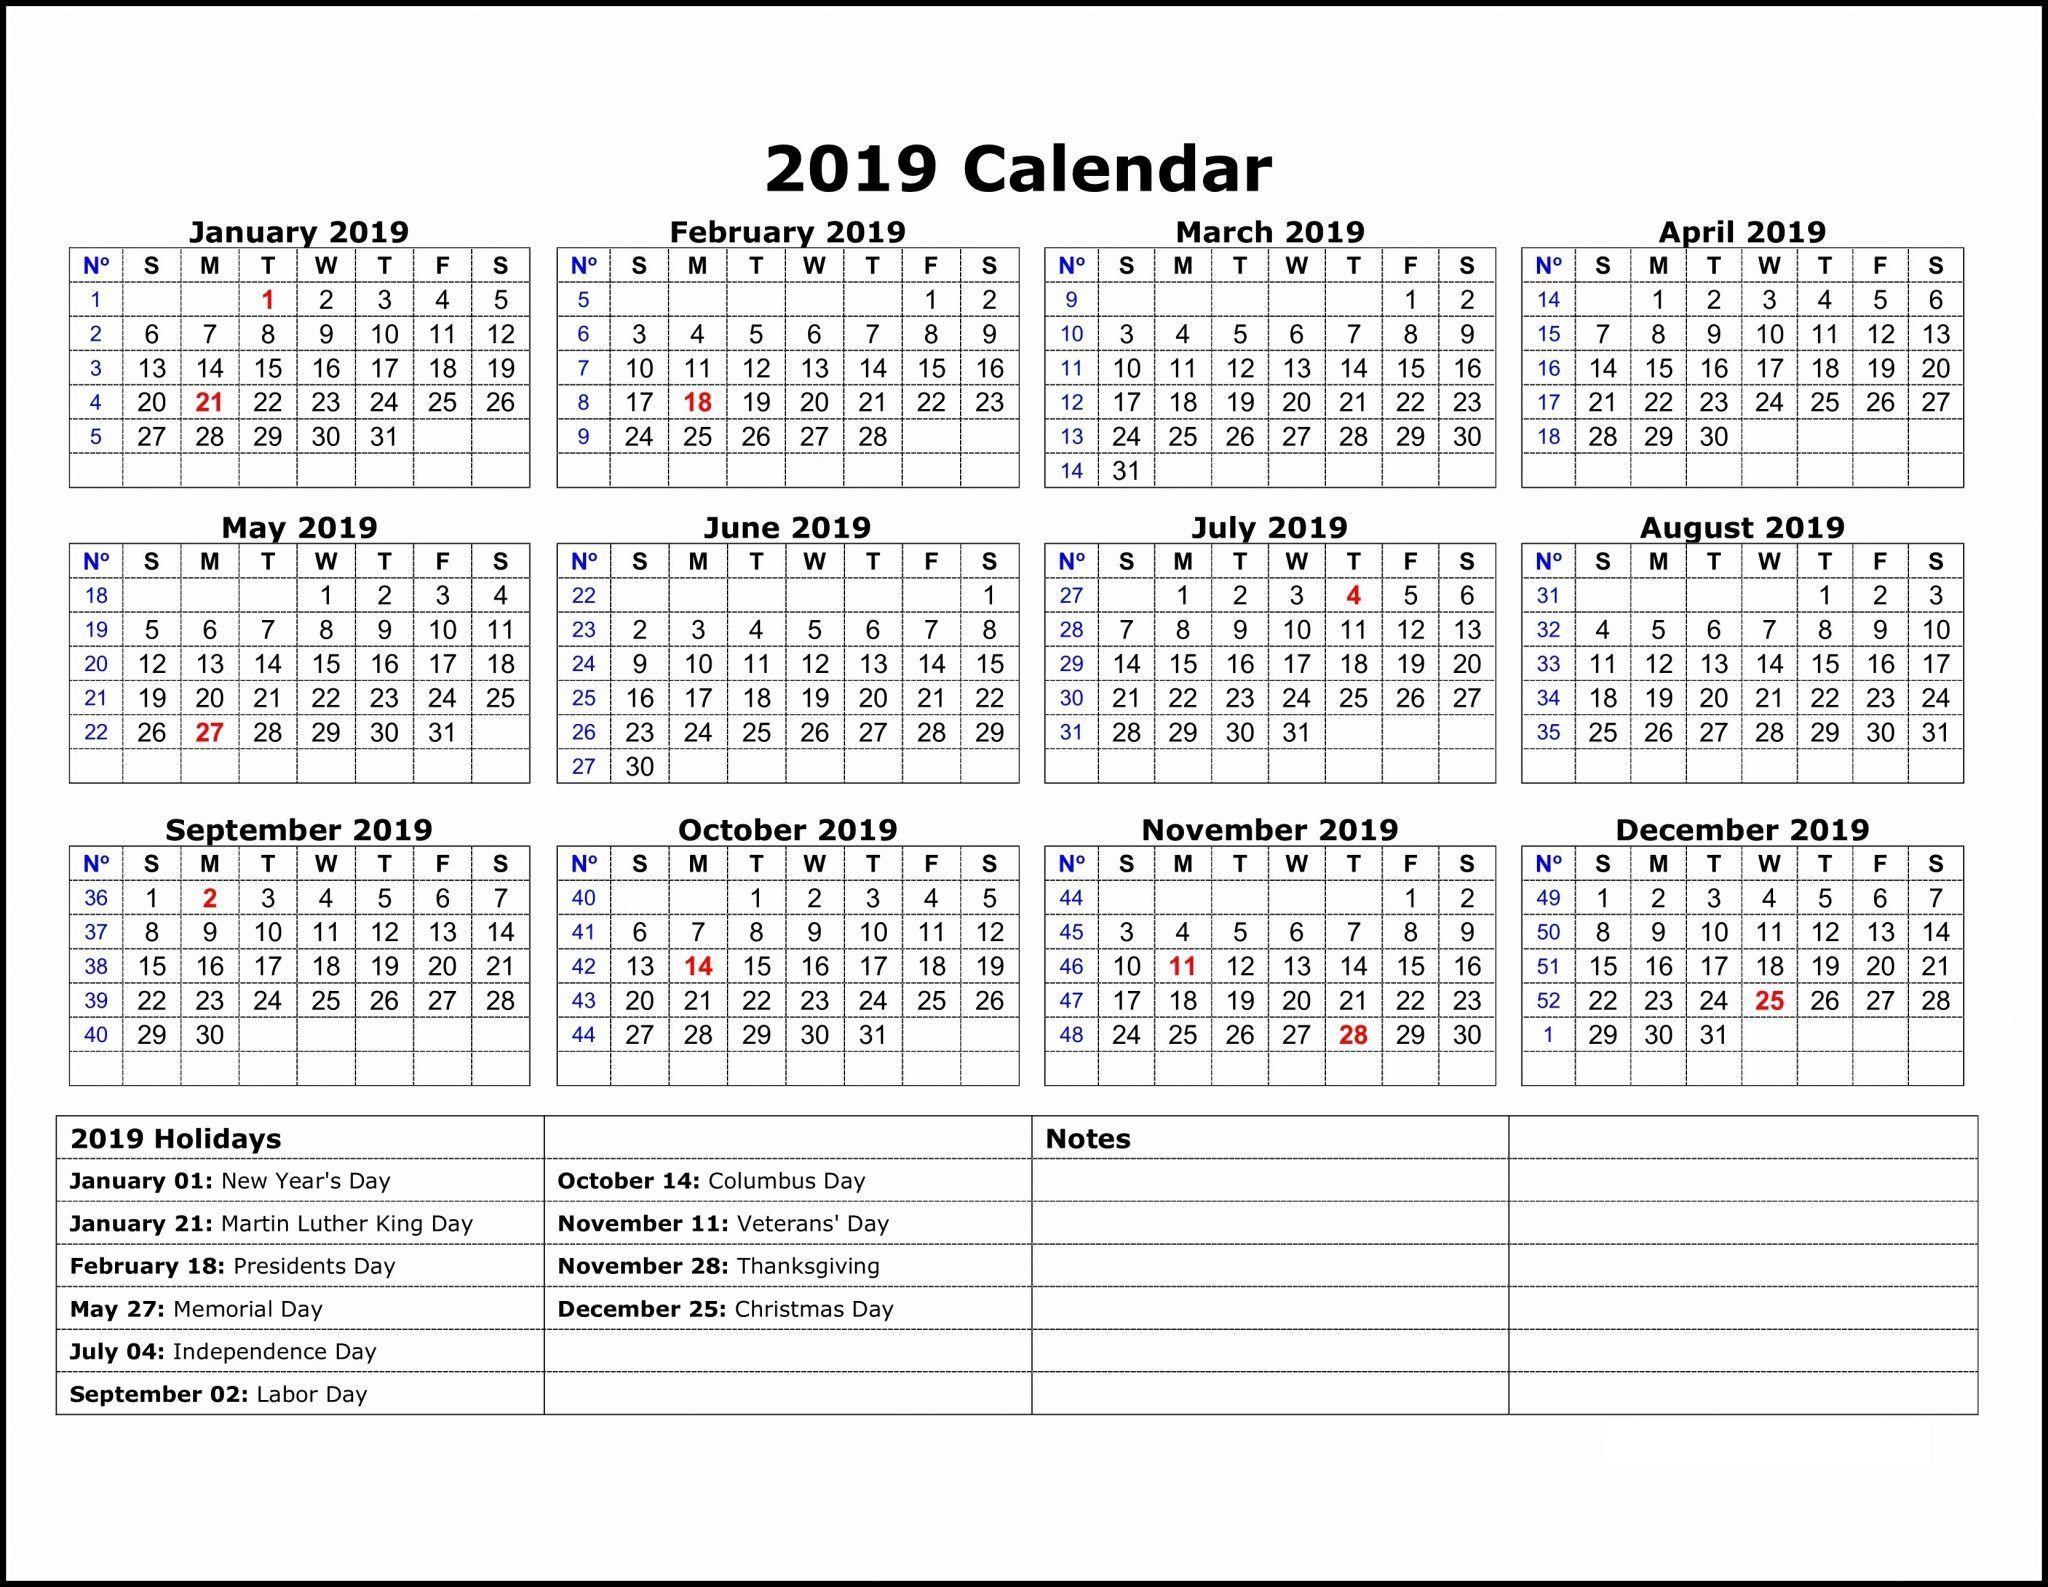 2019 Calendar Template One Page | Printable Calendar throughout Printable 12 Month Calendar On One Page